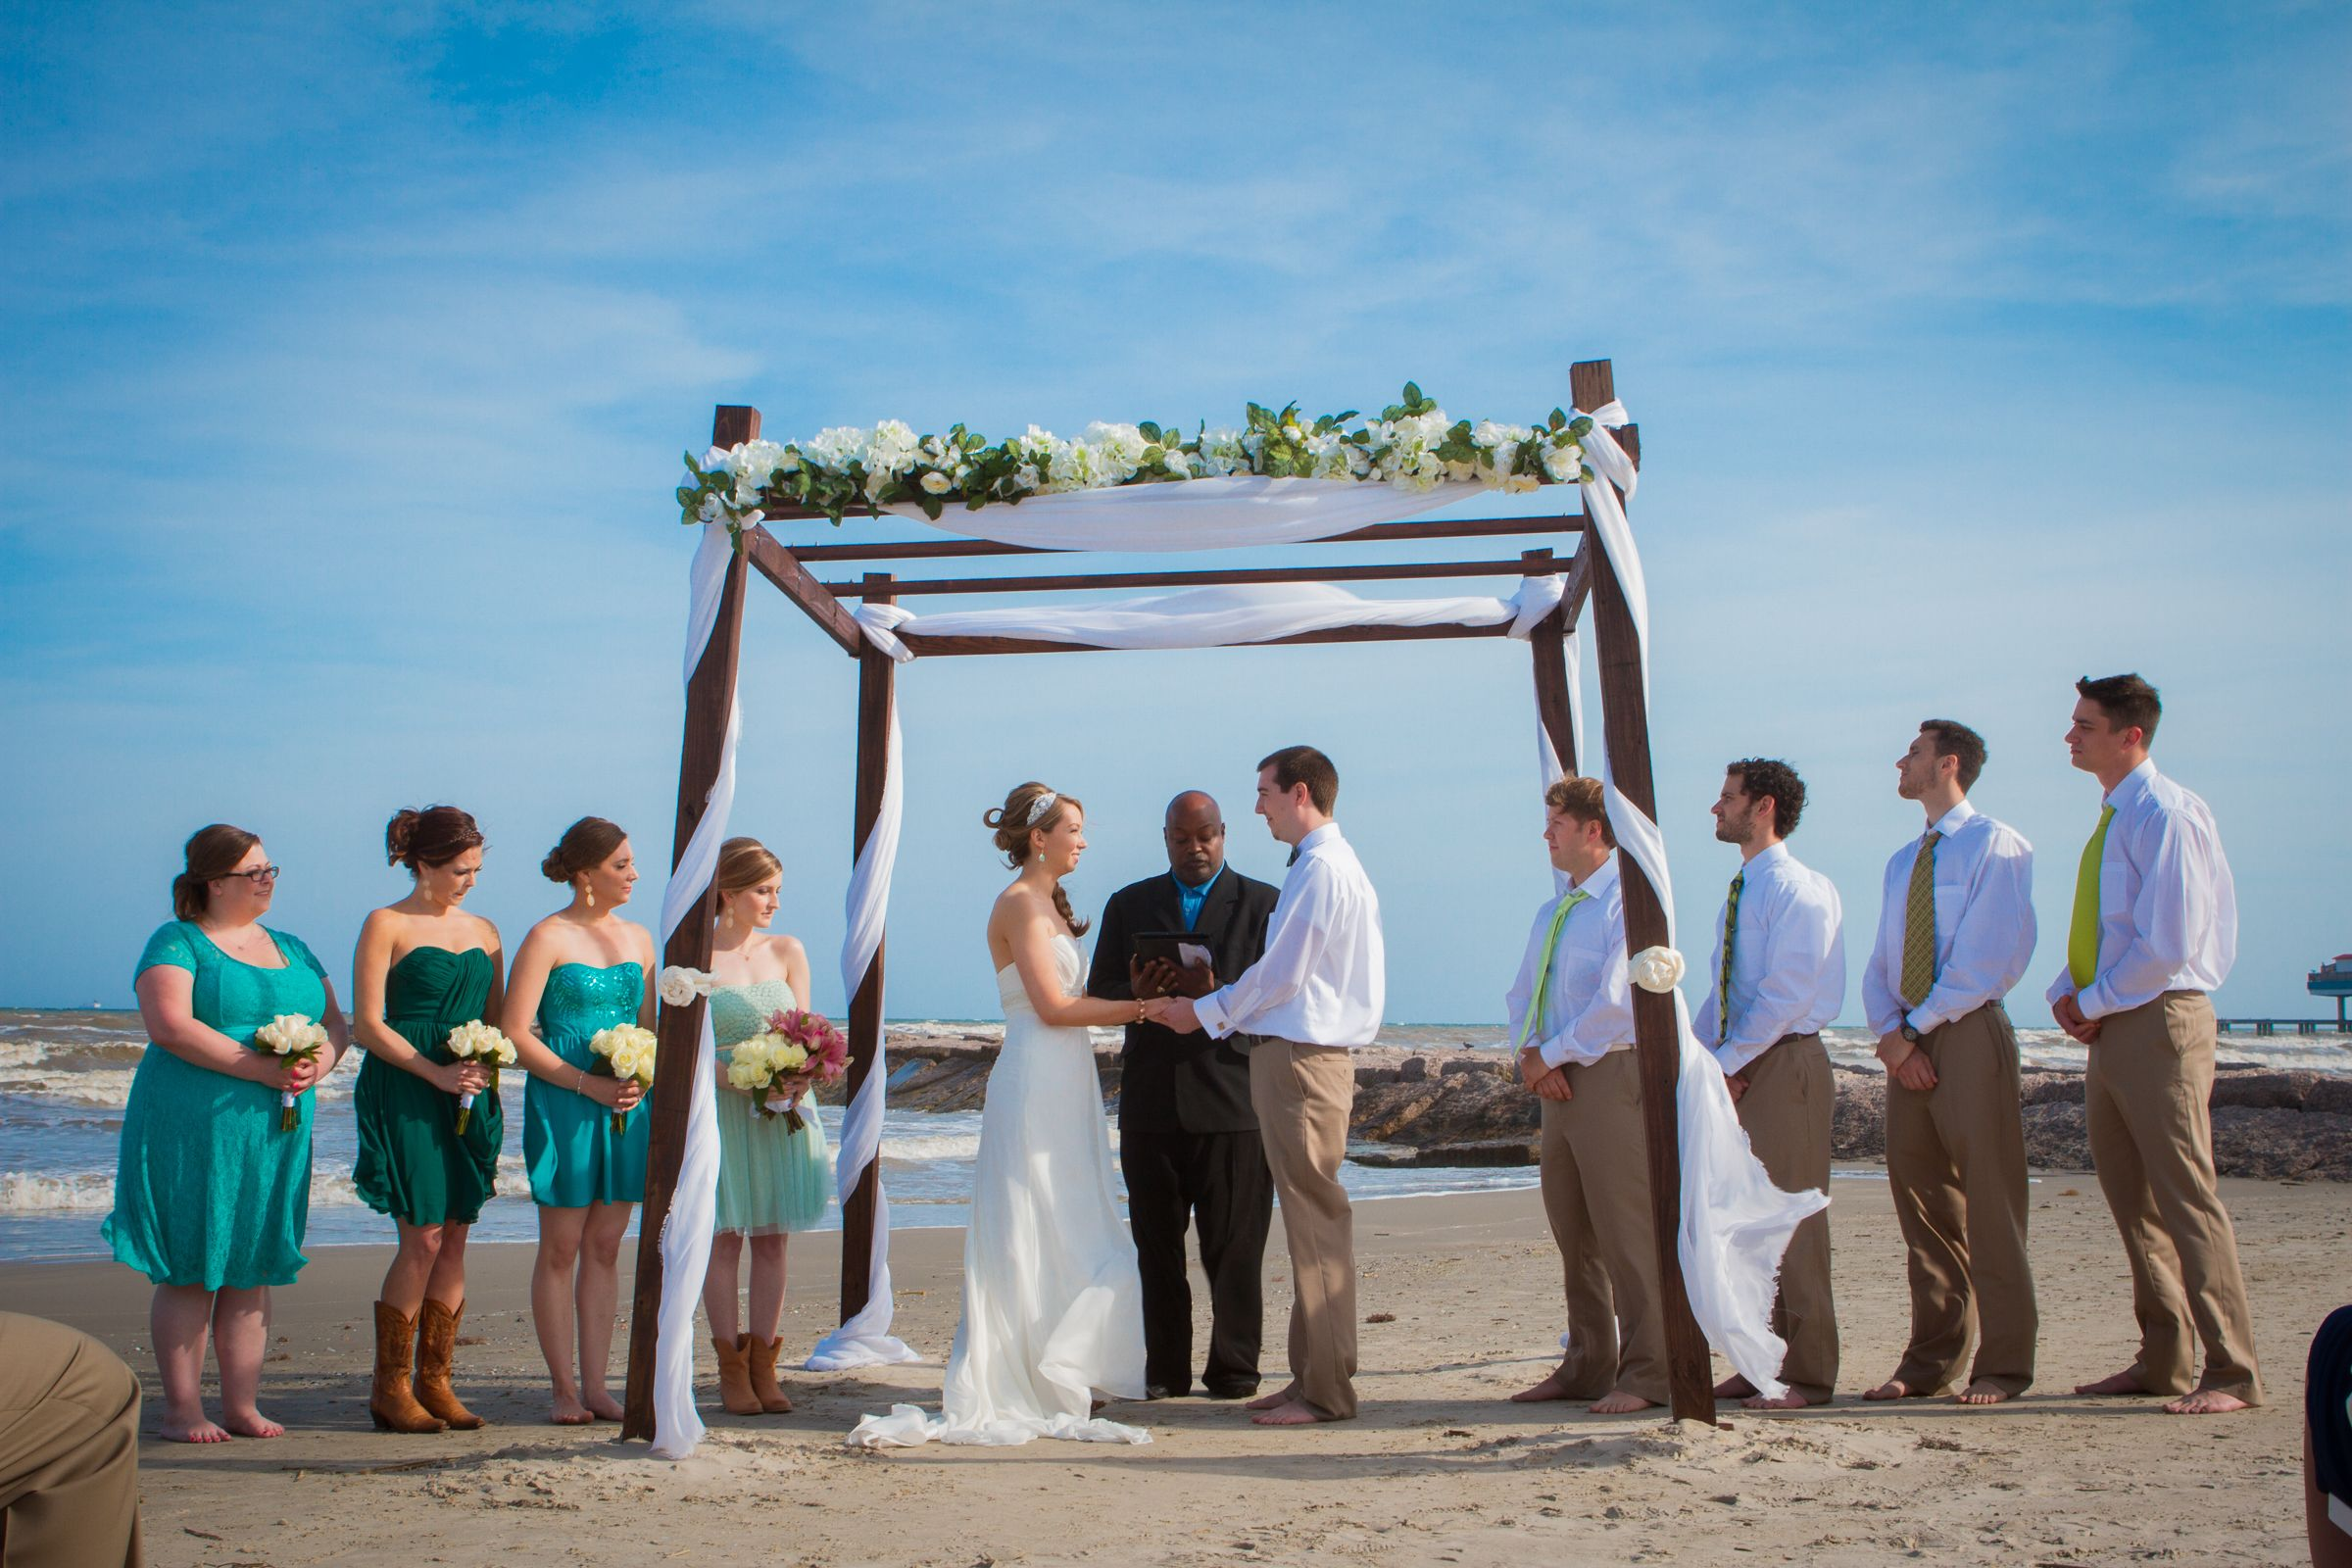 Galveston Beach Weddings Event Venue The San Luis Resort Tx Wedding Ideas Pinterest Venues And